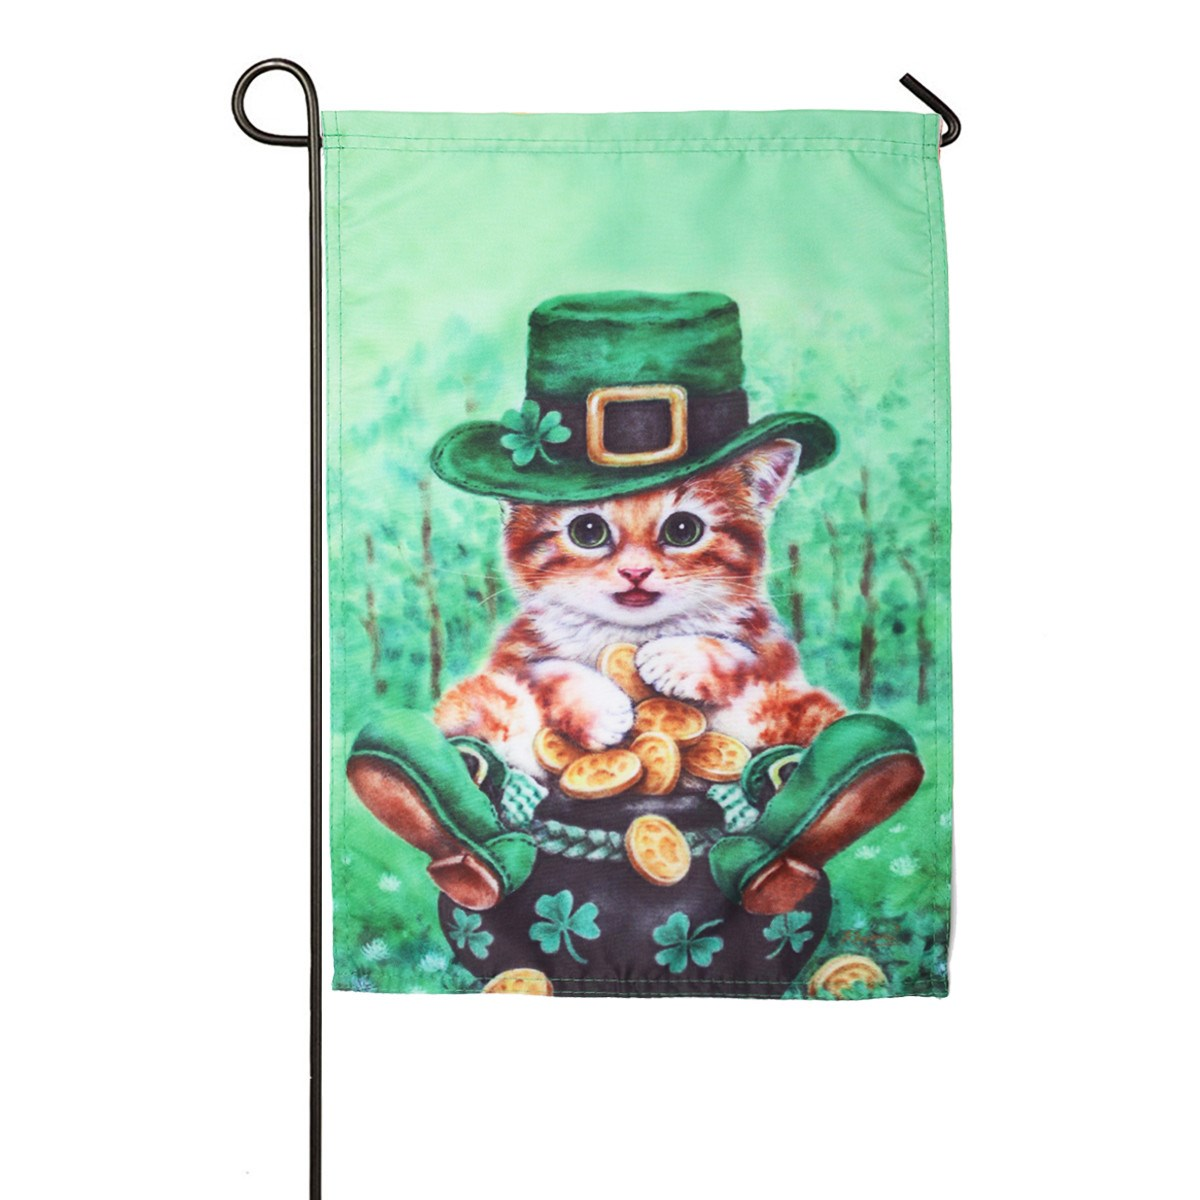 Great Garden Flag 30x45cm Cat House Wear Hat Home Living Room Decorative  Craftwork Gadgets Boutique Shop Decor